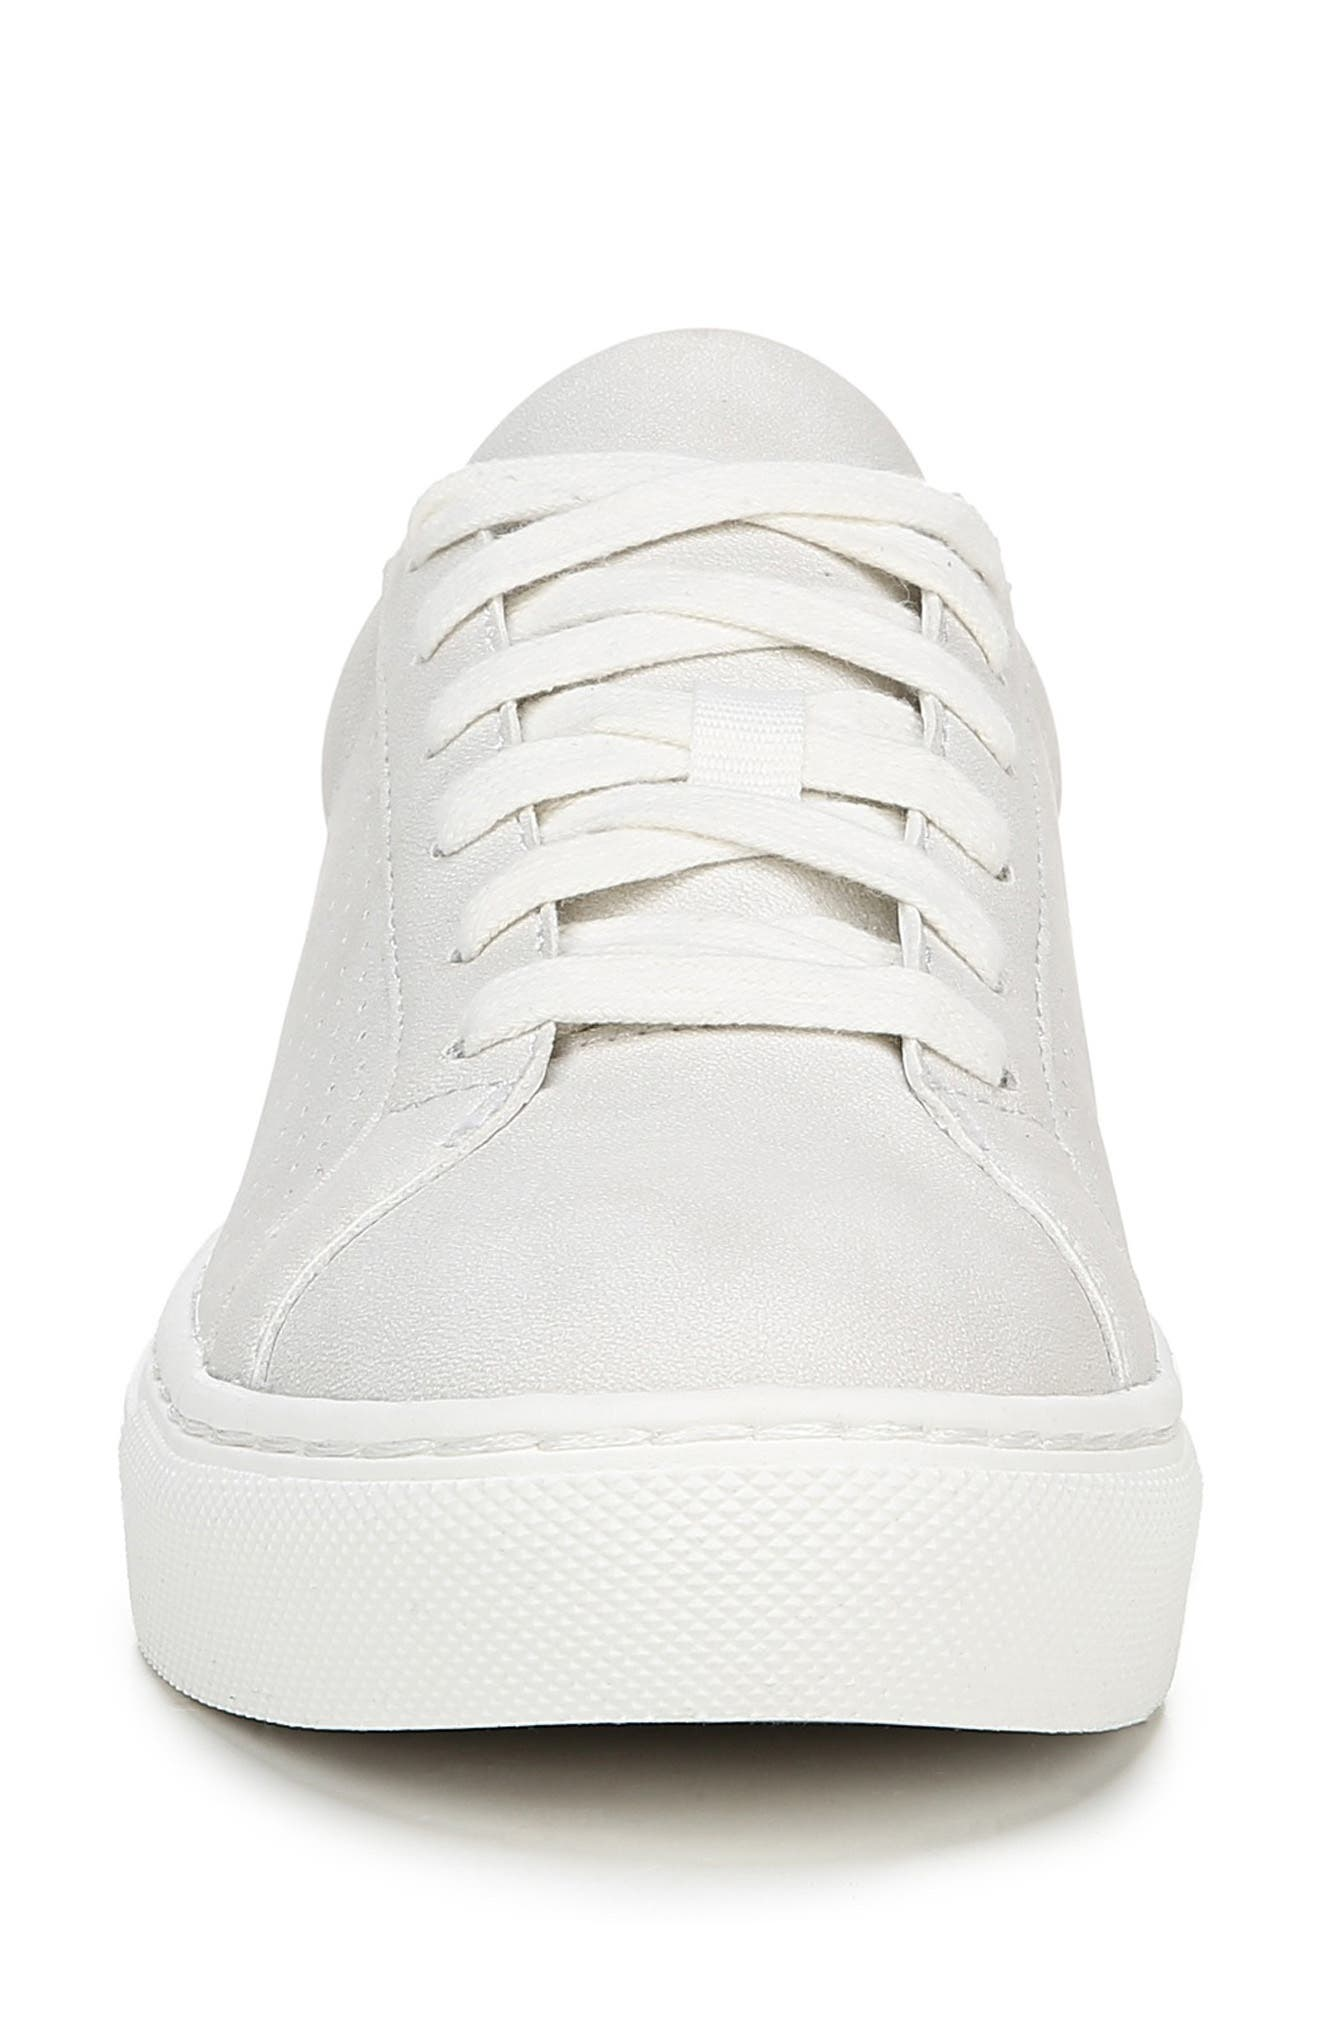 No Bad Vibes Sneaker,                             Alternate thumbnail 3, color,                             WHITE FAUX LEATHER